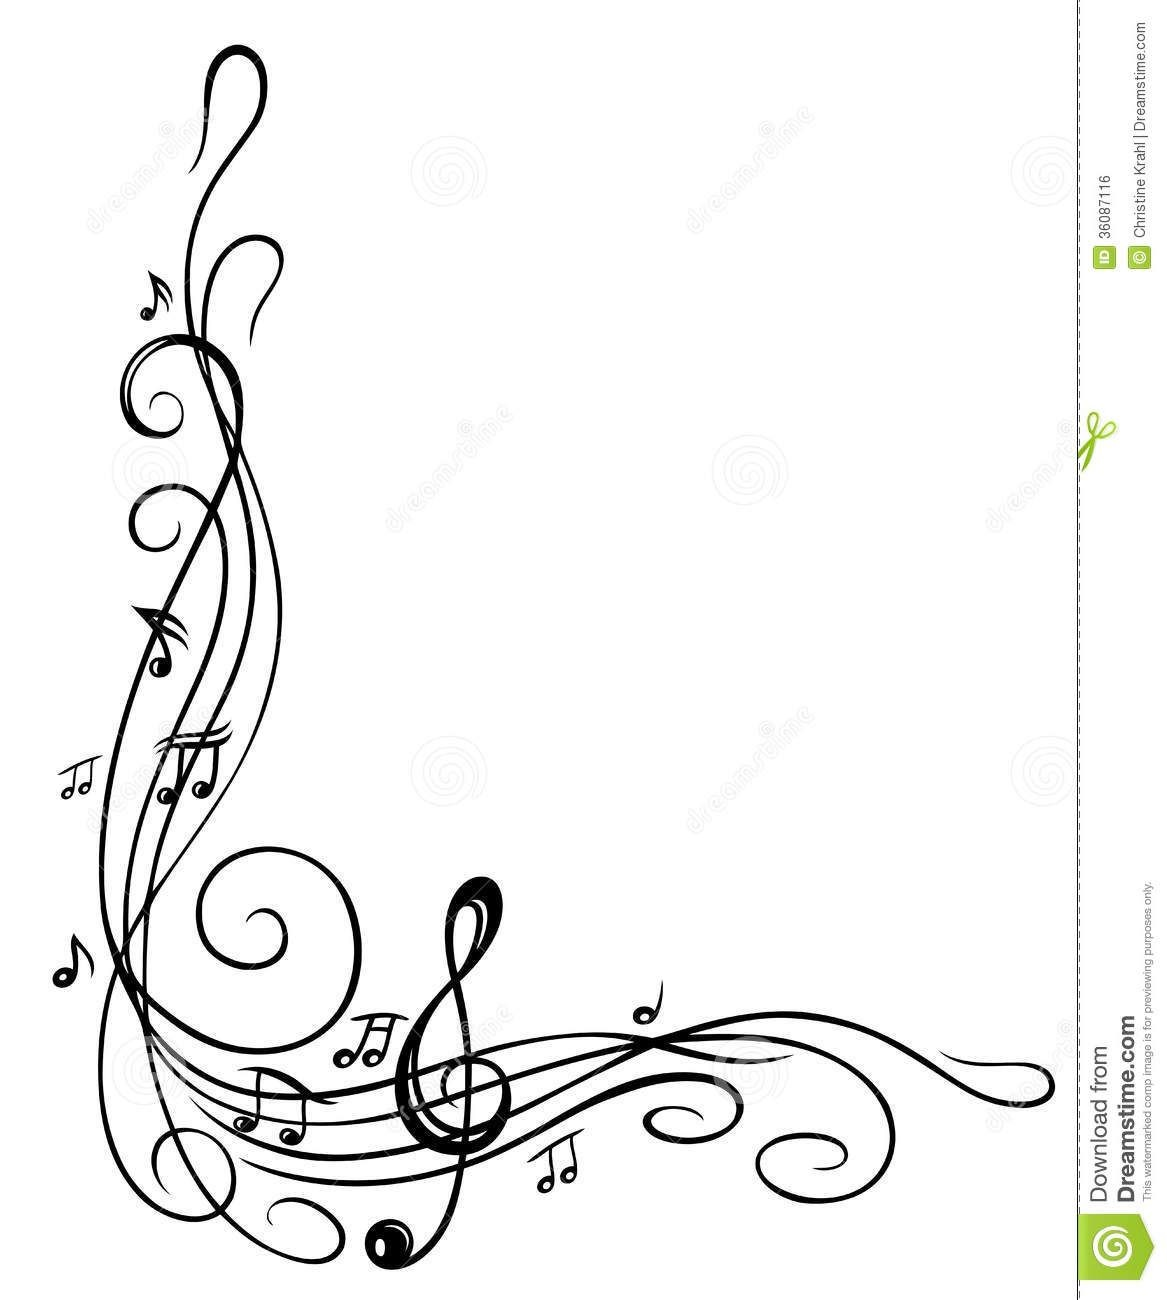 Wedding clipart coloring jpg royalty free download coloring ~ Musical Notes Images Free Awesome Image ... jpg royalty free download